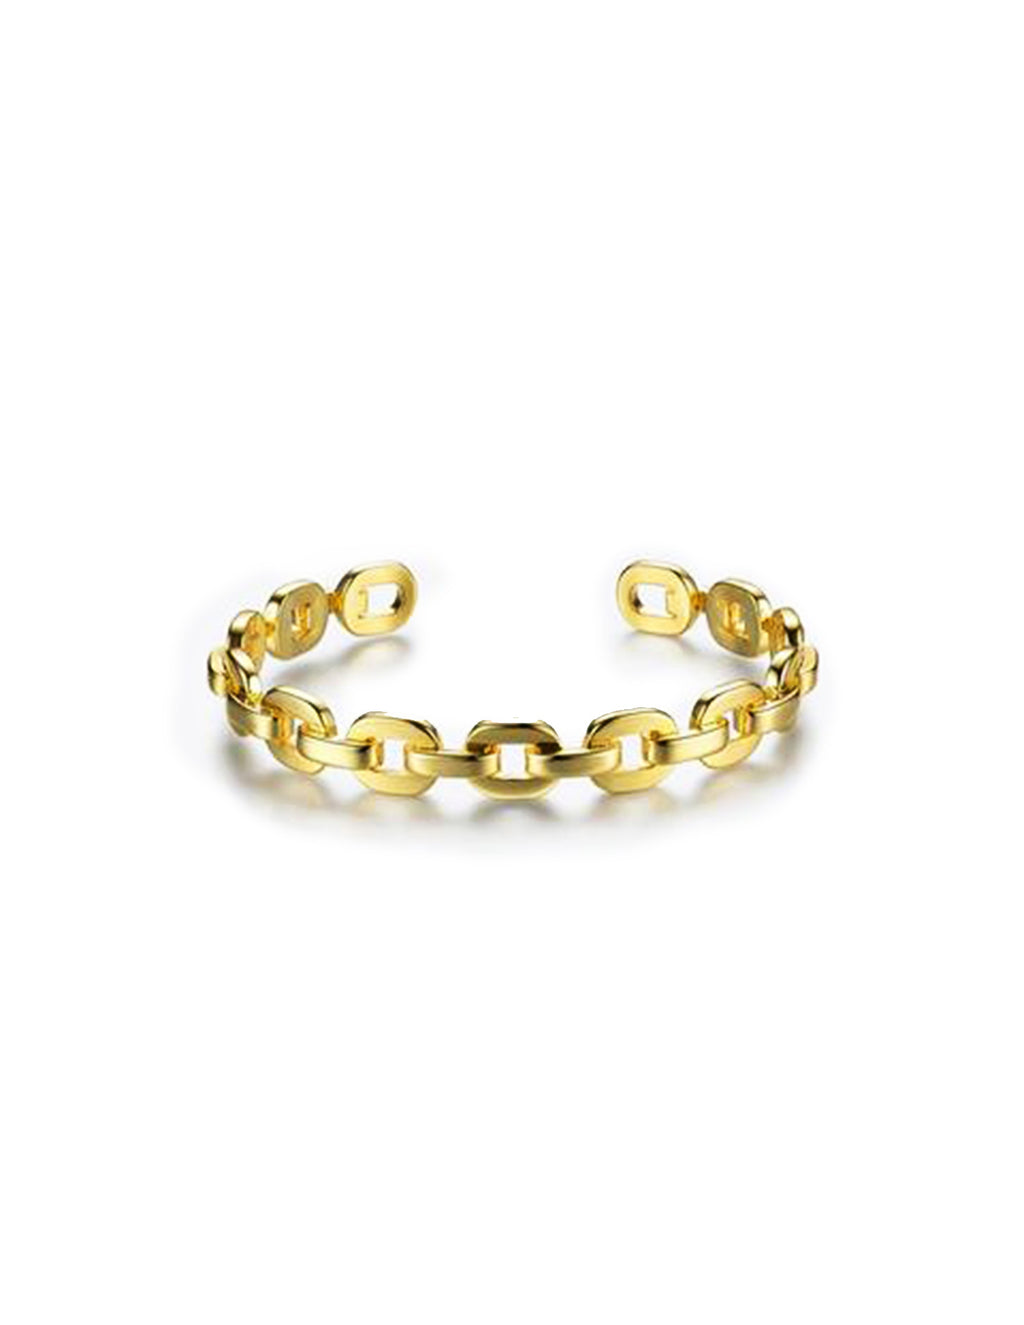 Gold Plated Chain Link Cuff